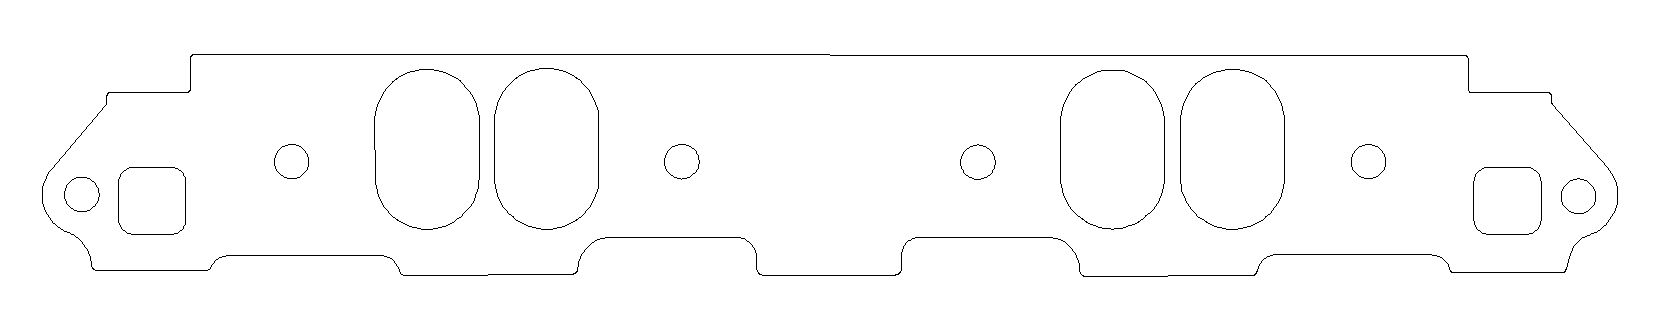 C5569-060 Cometic Gasket Intake Manifold Gasket For Use With